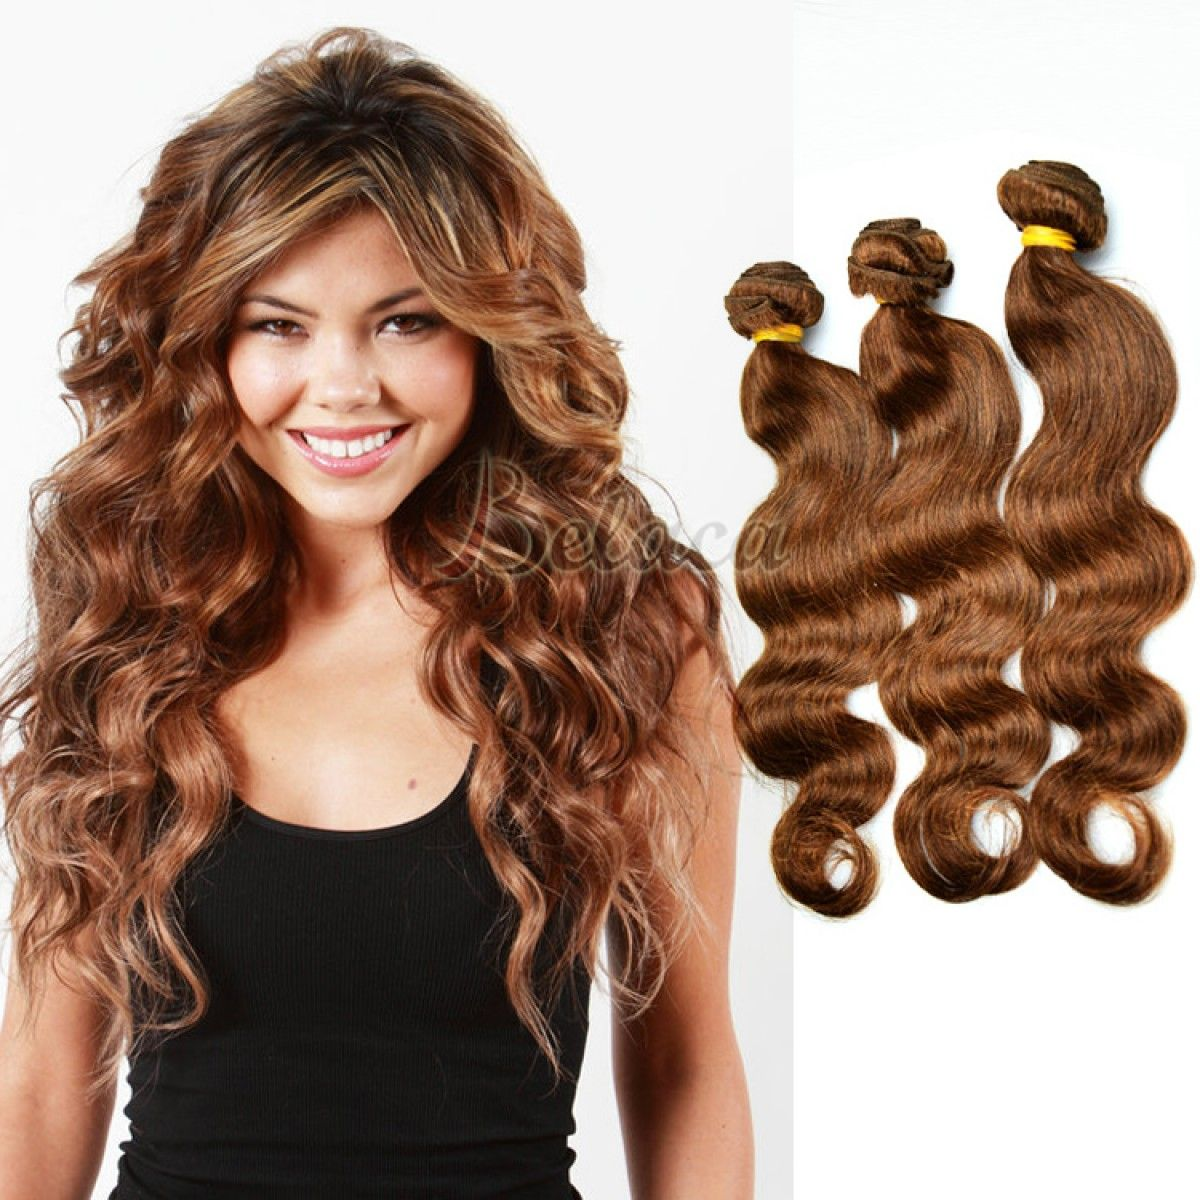 Do You Wanna Try Real Human Hair Extensions Come And Get Your